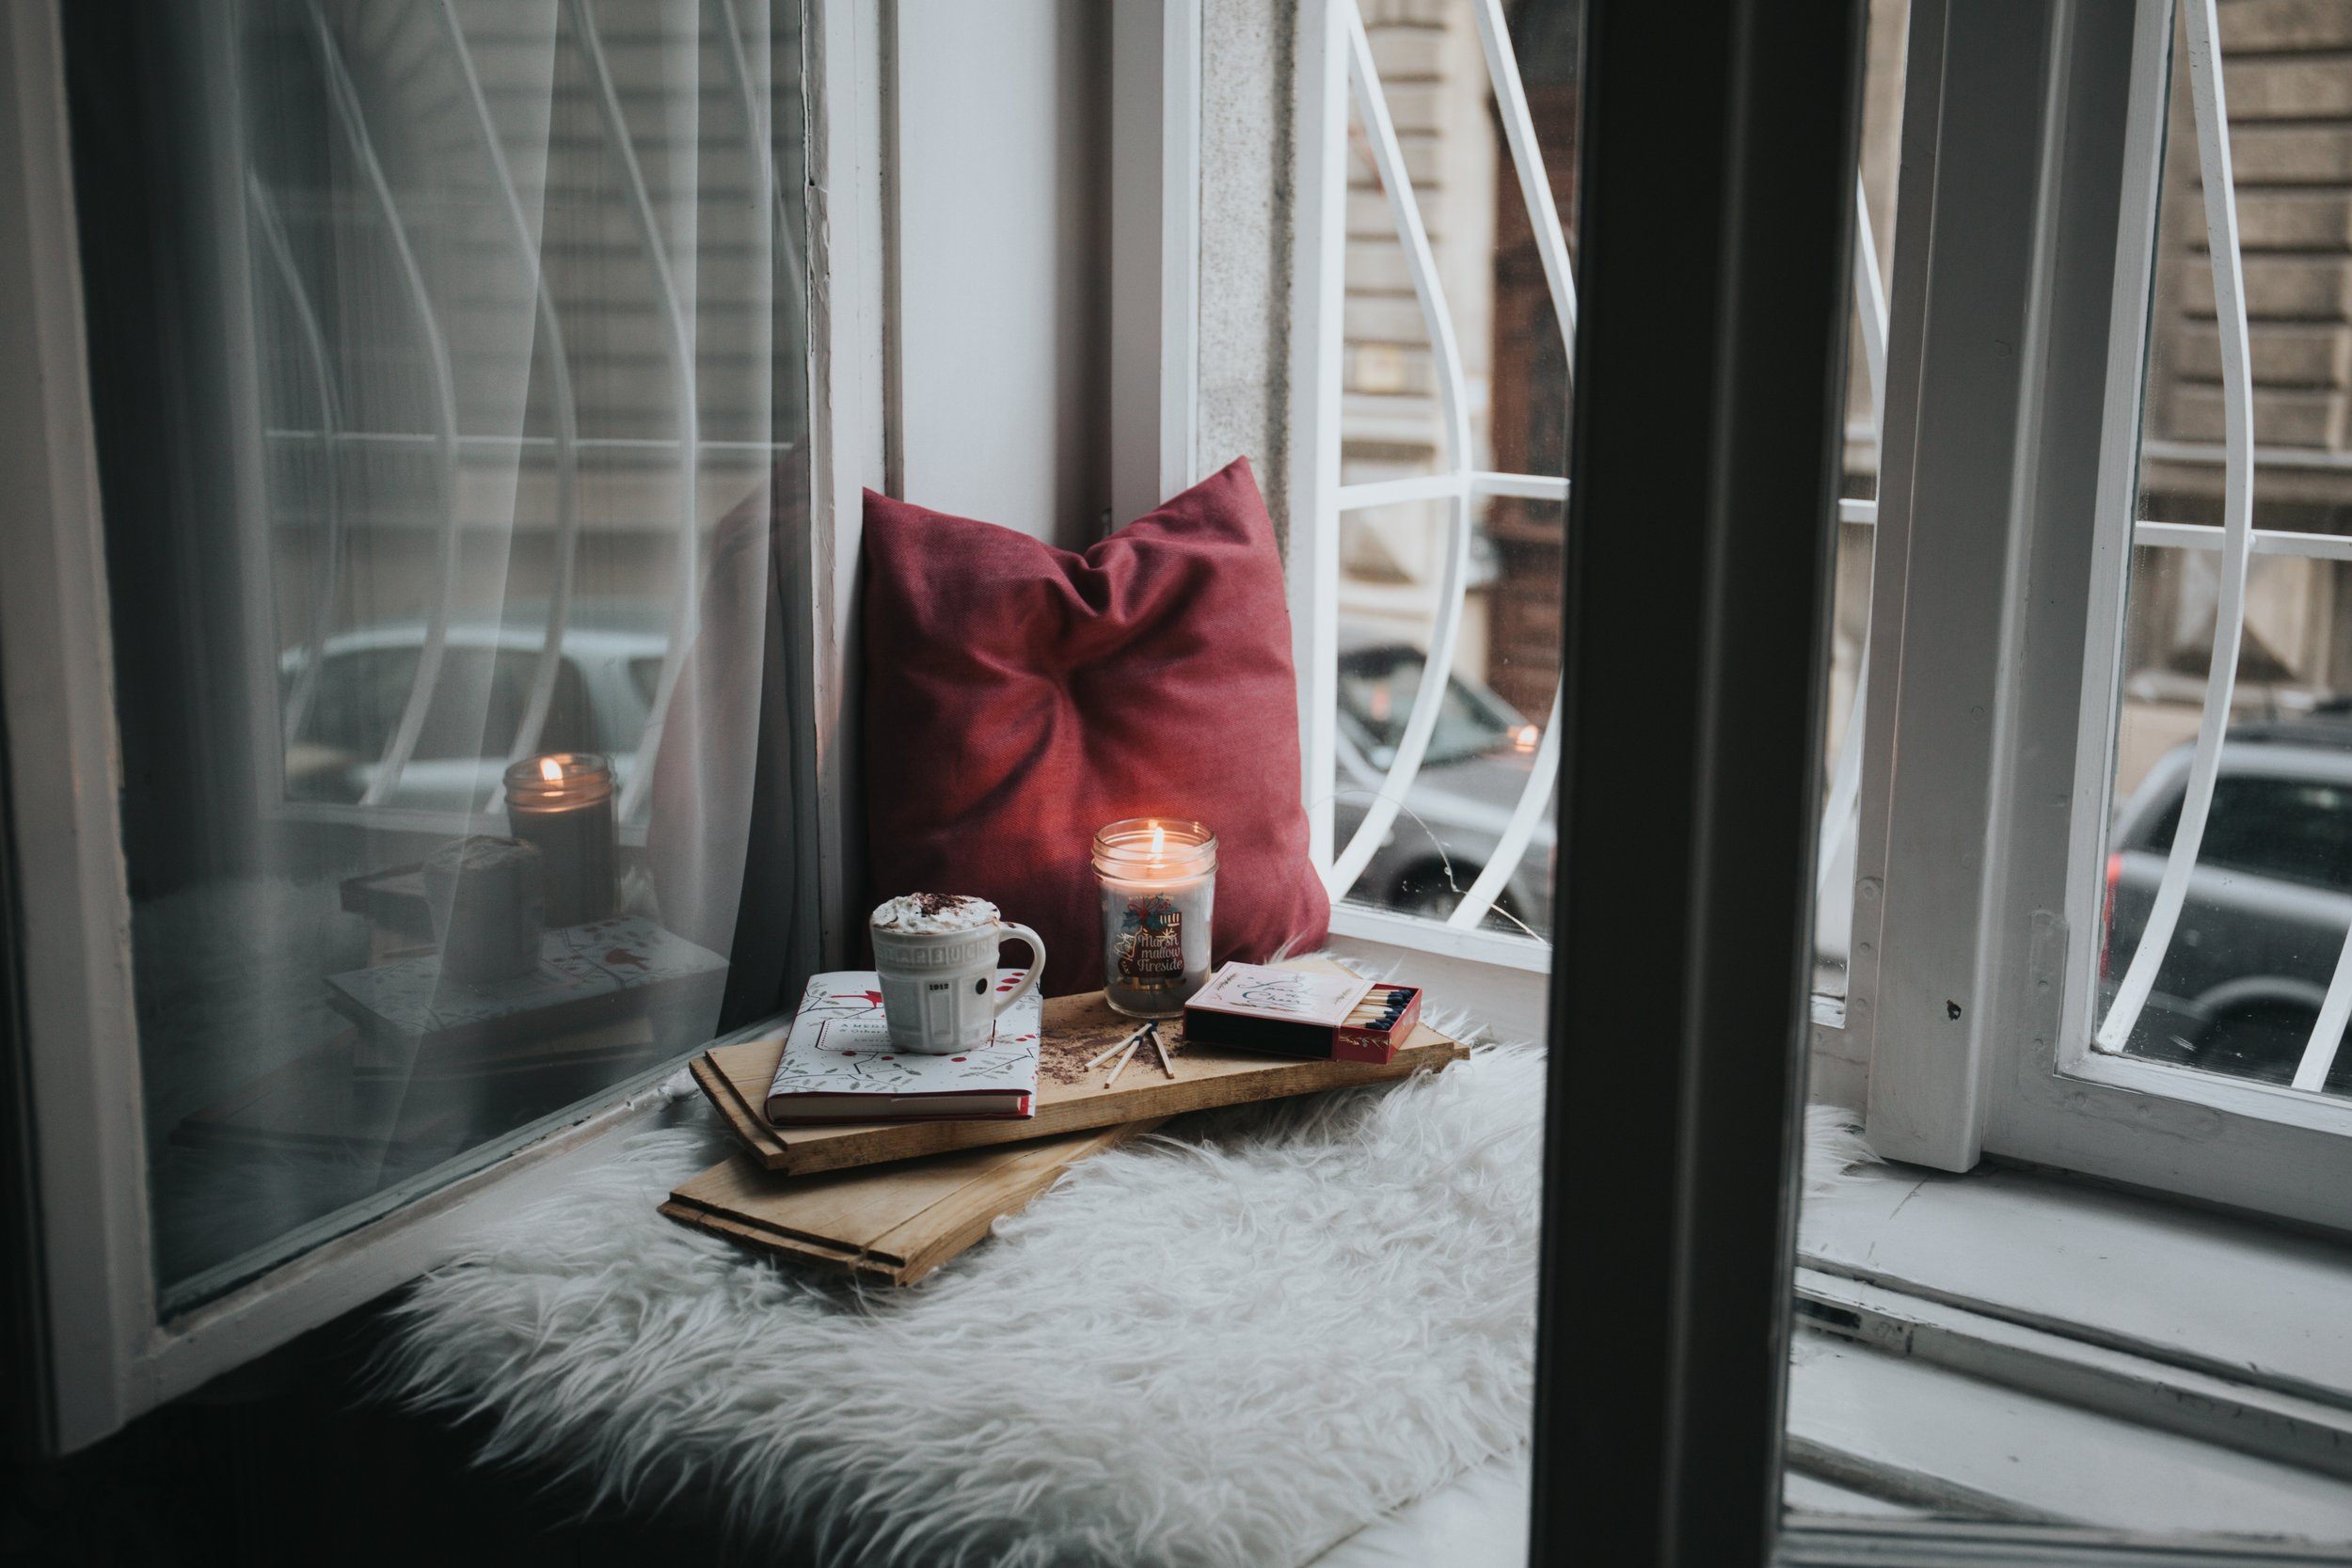 how to take care of yourself during the winter, self care tips on how to take care of yourself, winter and self care tips, how to love yourself, tips and advice on how to take care of yourself during the winter.jpg